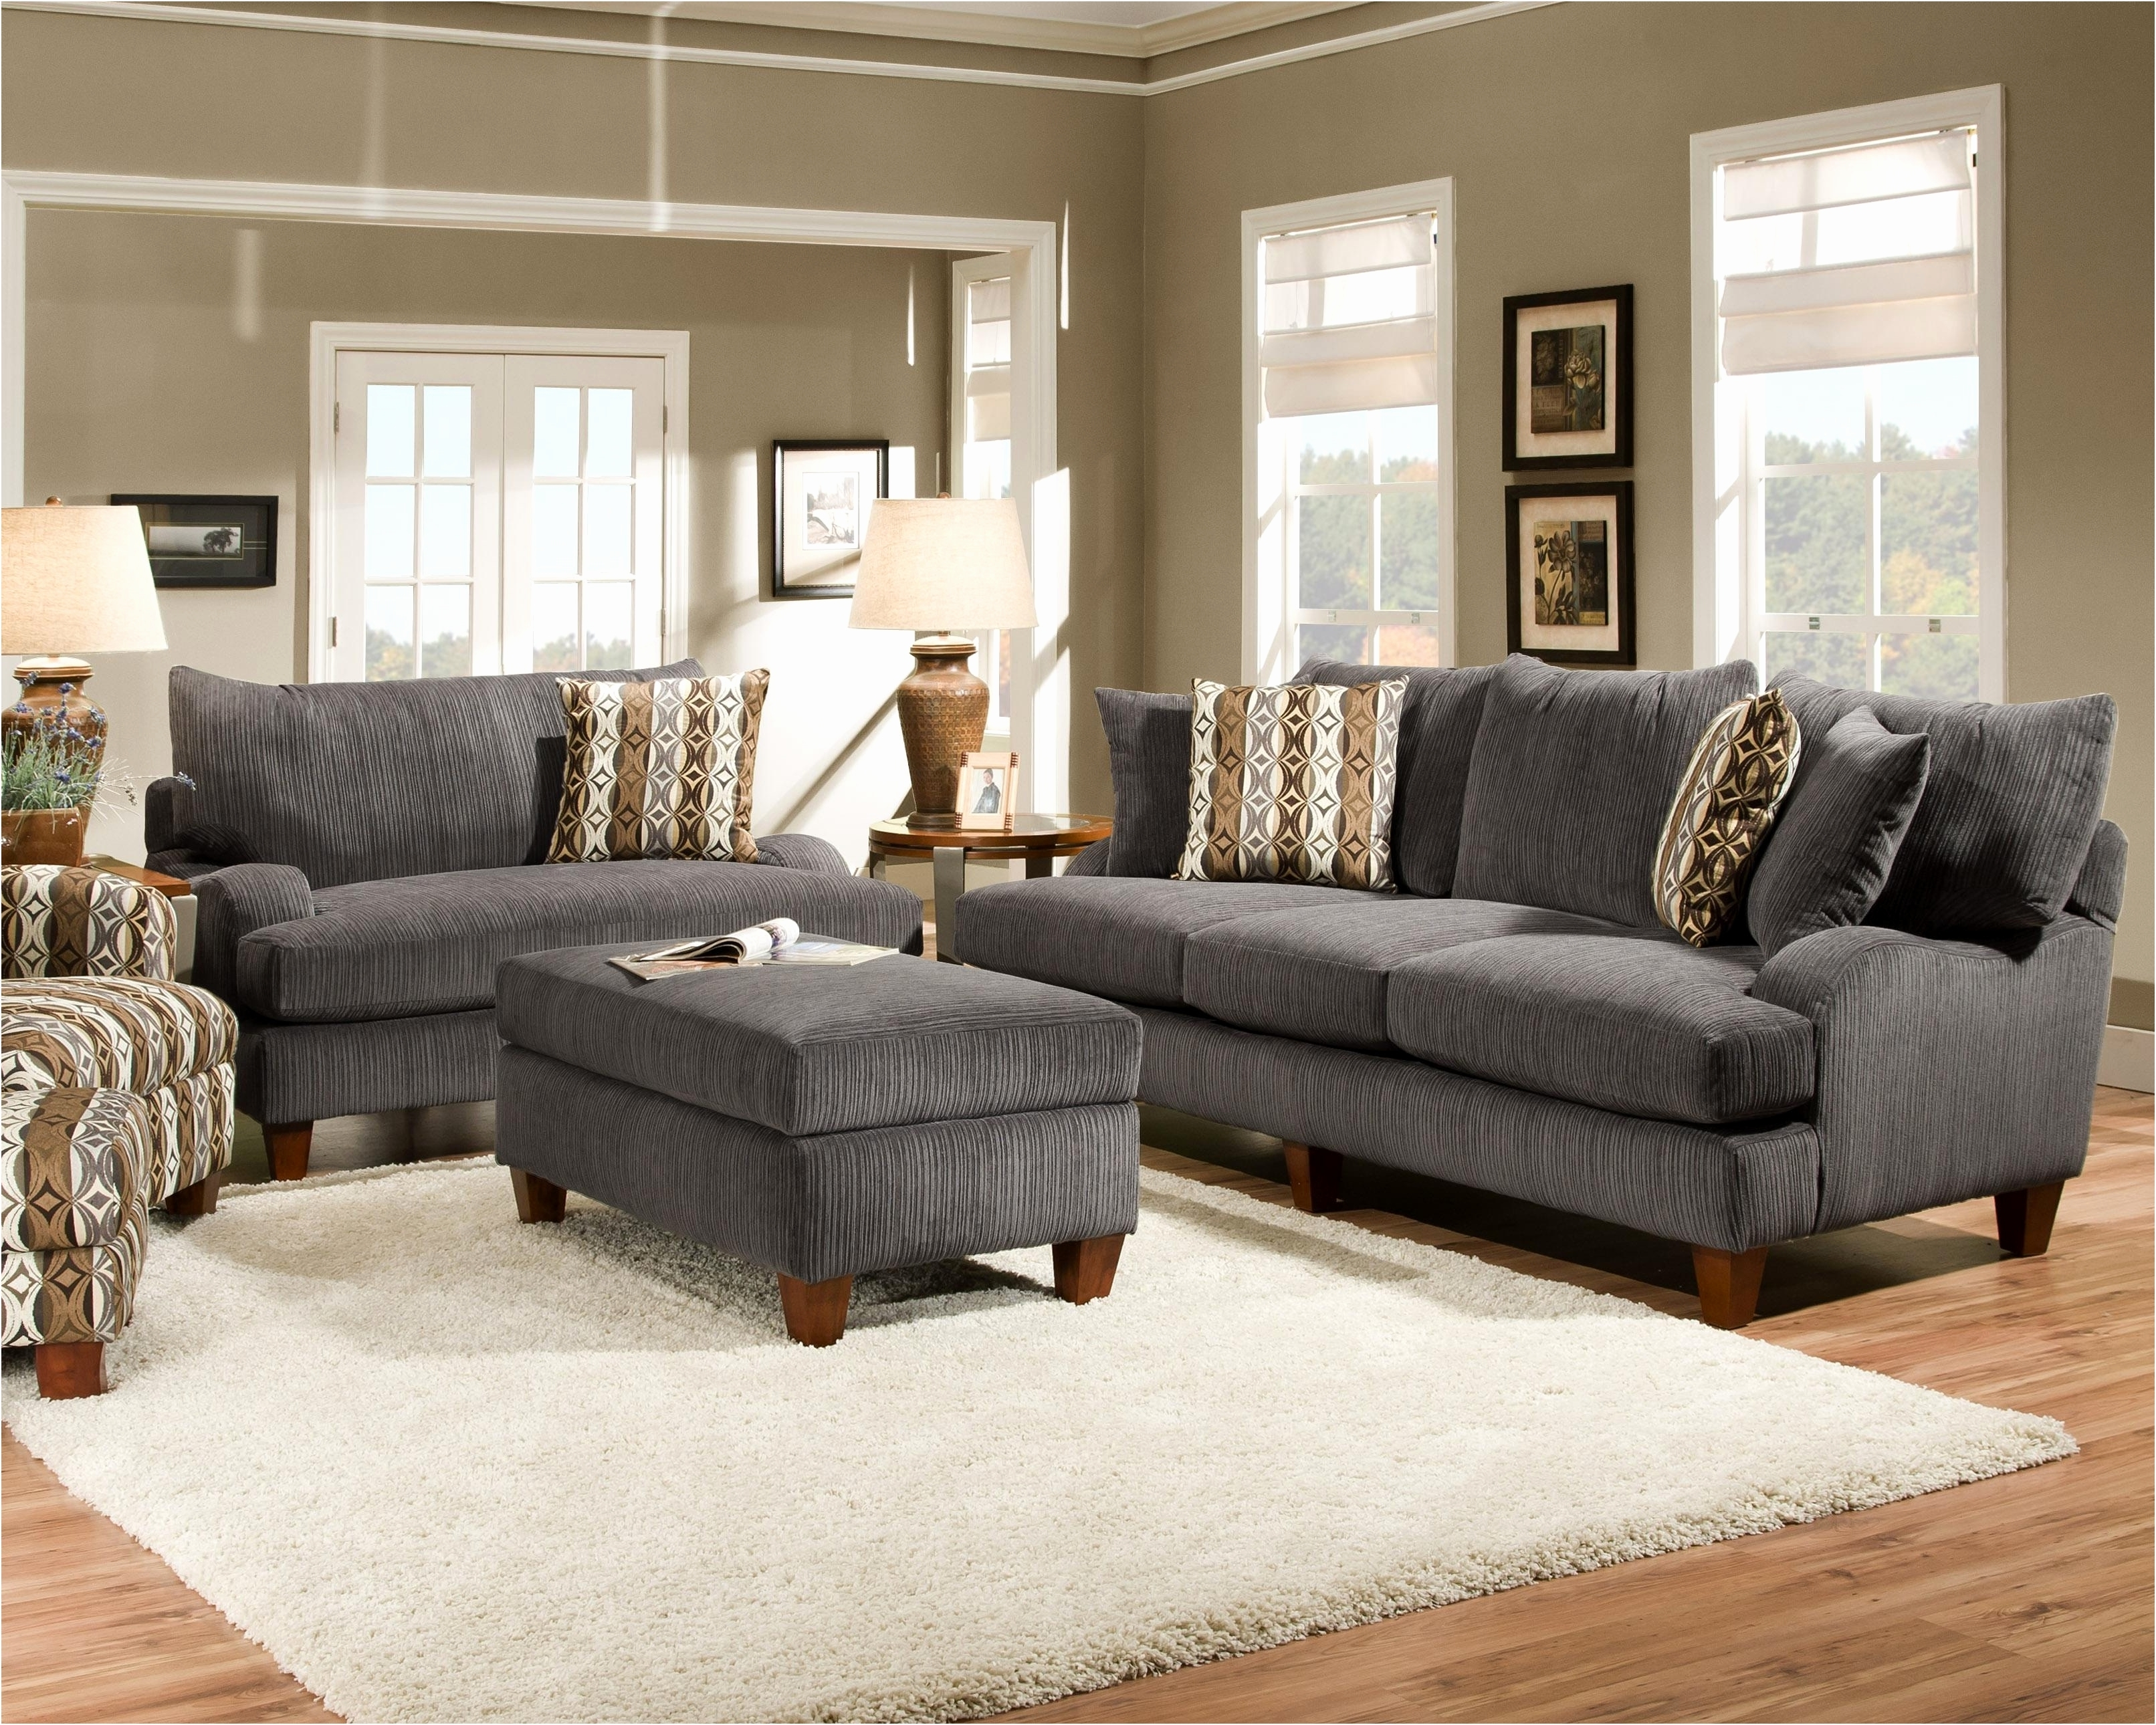 Charcoal Grey Sofas In Current Grey Couch Living Room Elegant Dark Gray Couch Living Room Ideas (View 4 of 15)